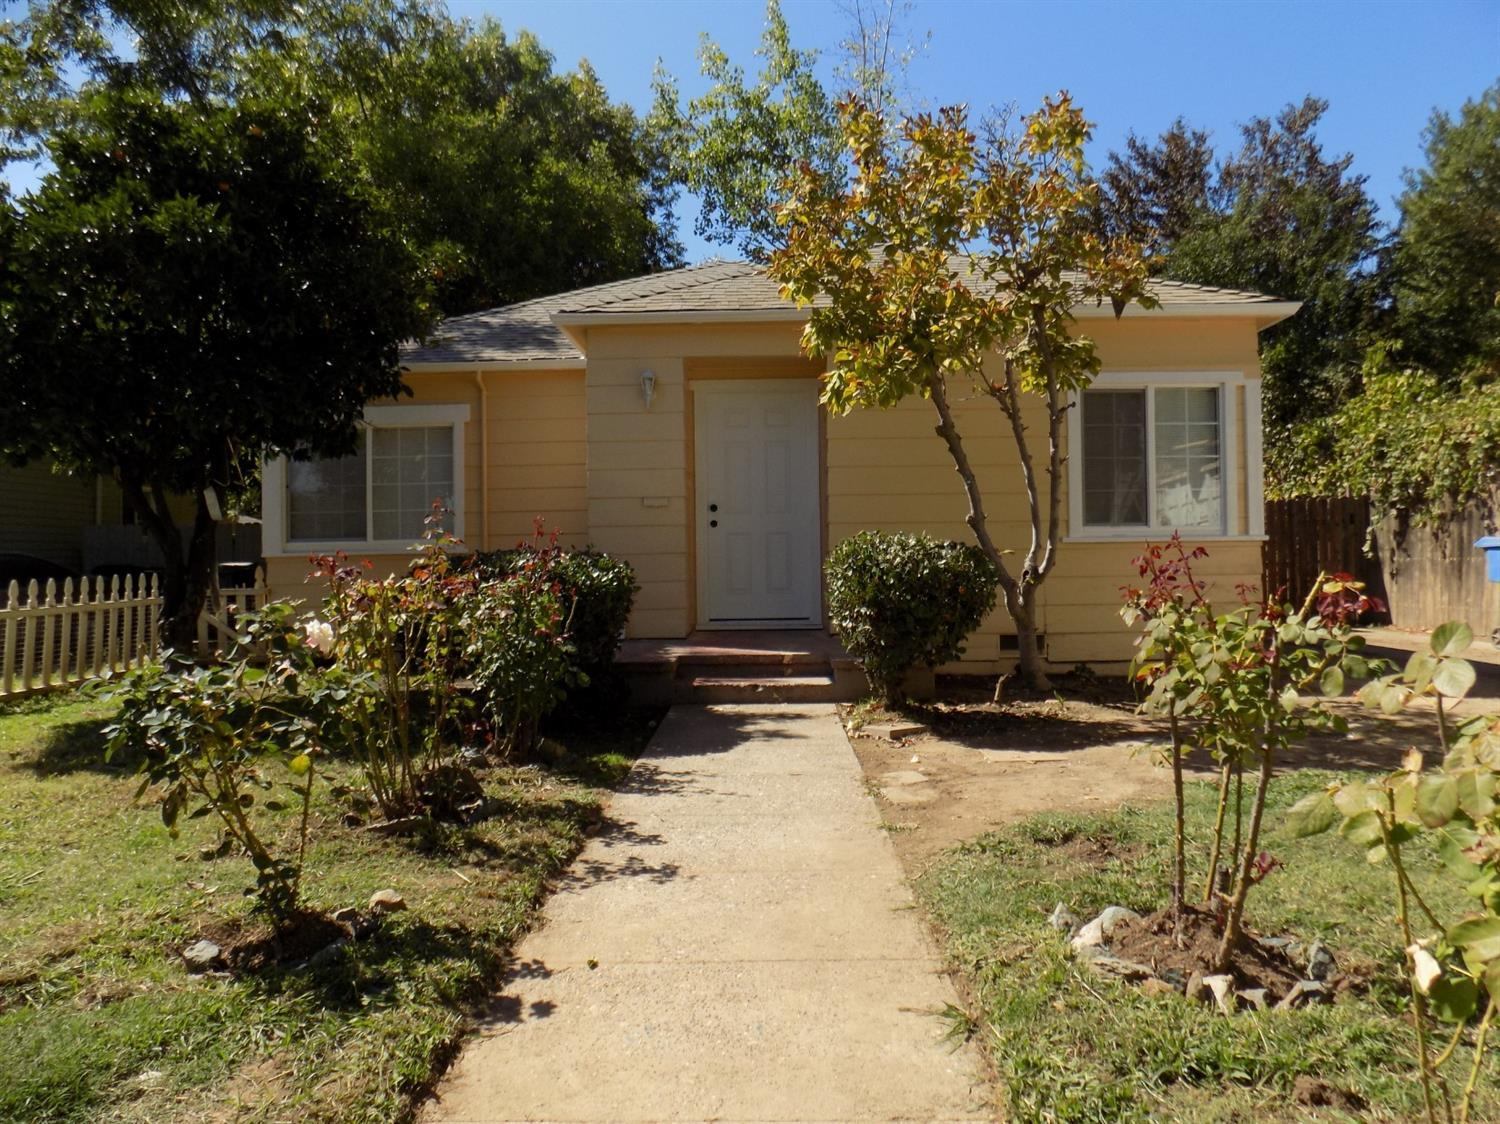 Colonial Heights Homes for Sale & Real Estate, Sacramento — ZipRealty